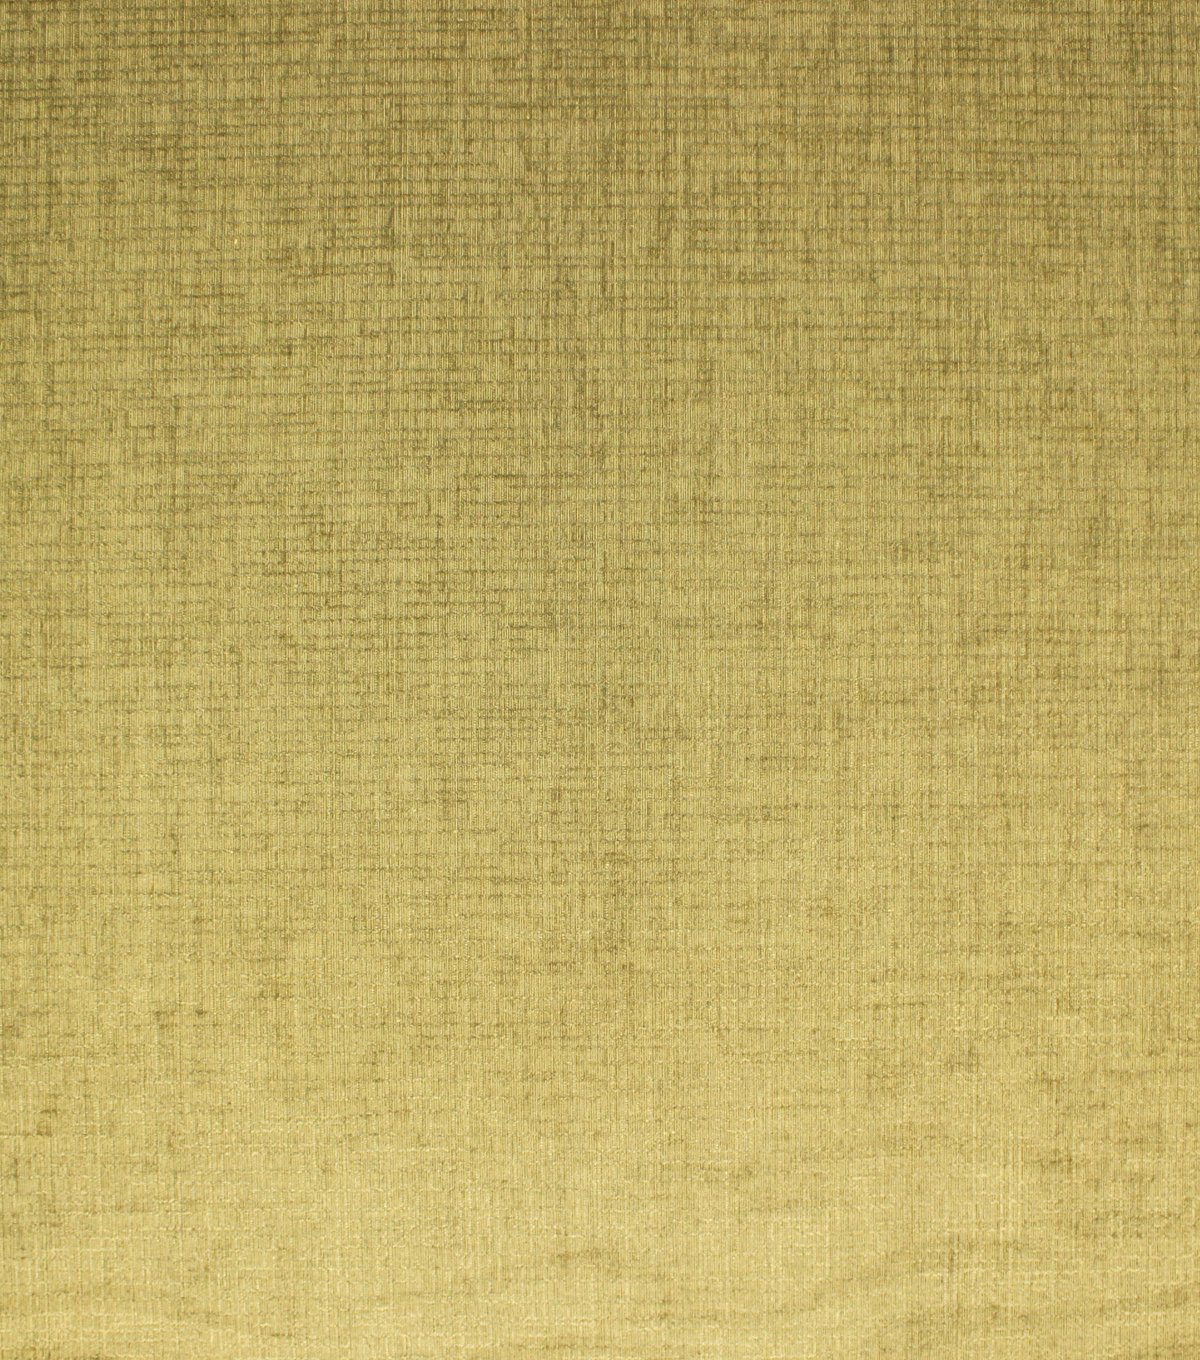 Home Decor 8\u0022x8\u0022 Fabric Swatch-Upholstery Fabric Barrow M7434-5782 Arbor